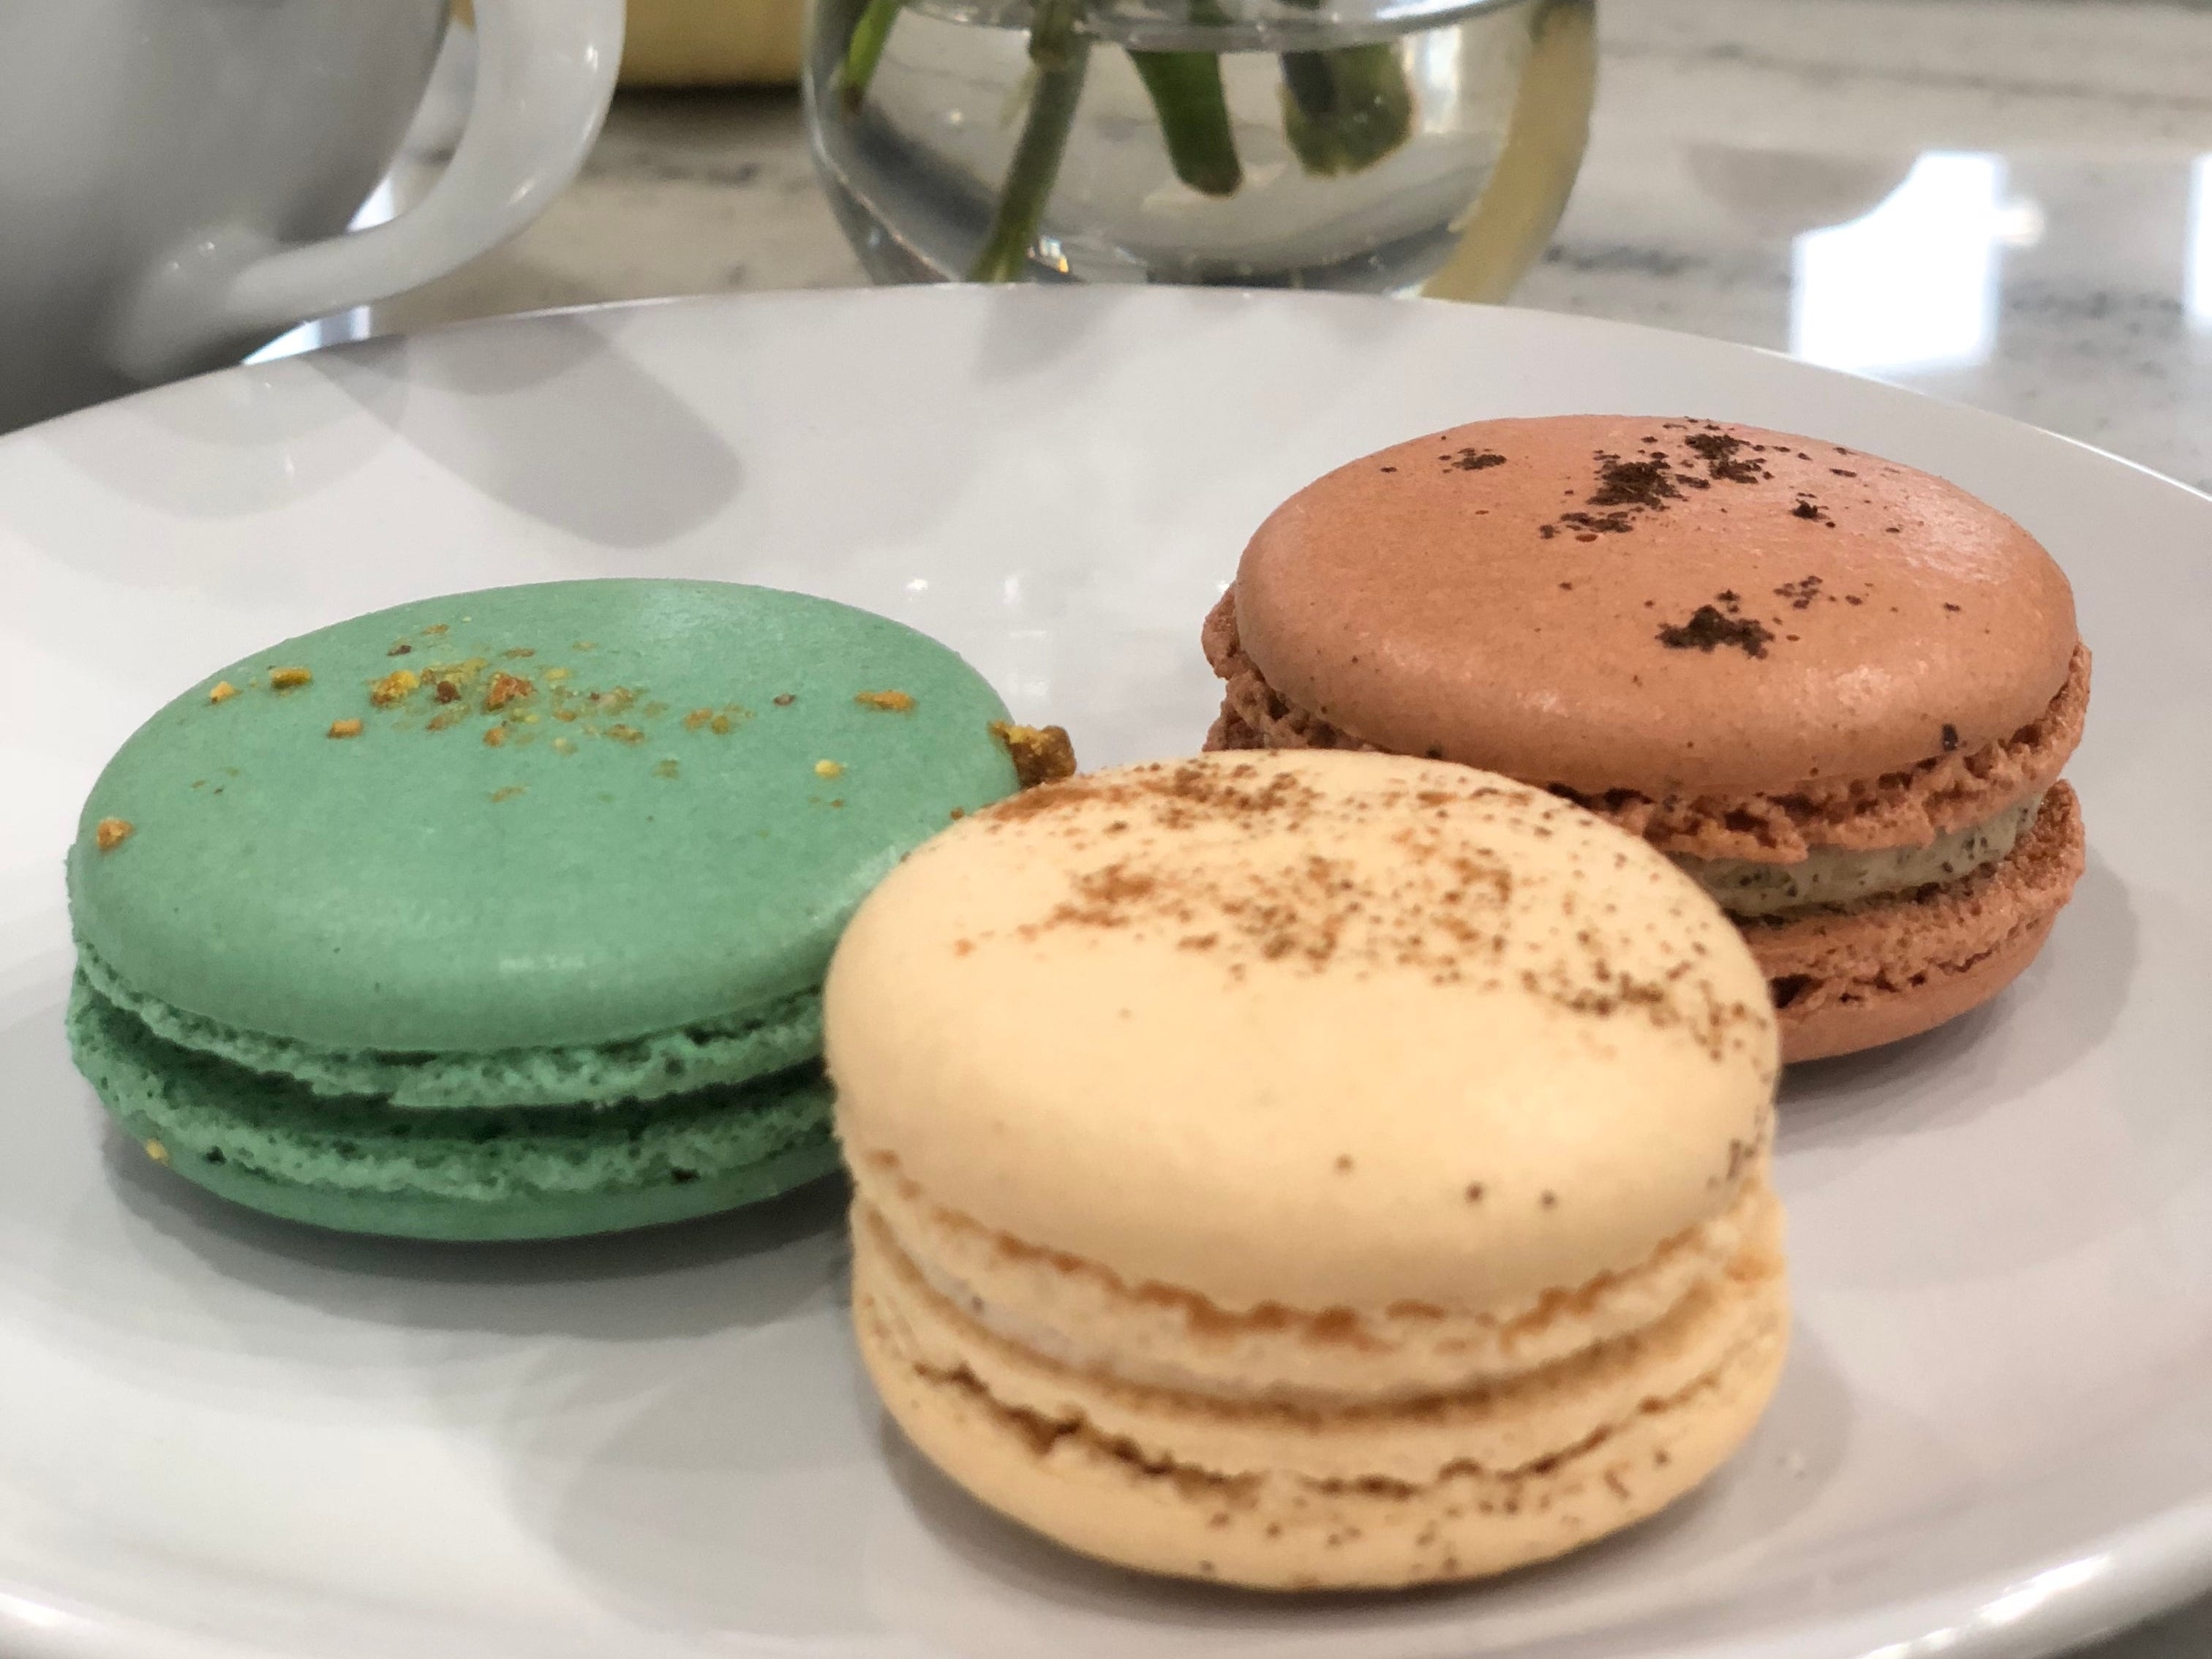 French macarons in Pistachio, Mocha and French Toast at 17 Berkshire in Overton Square.